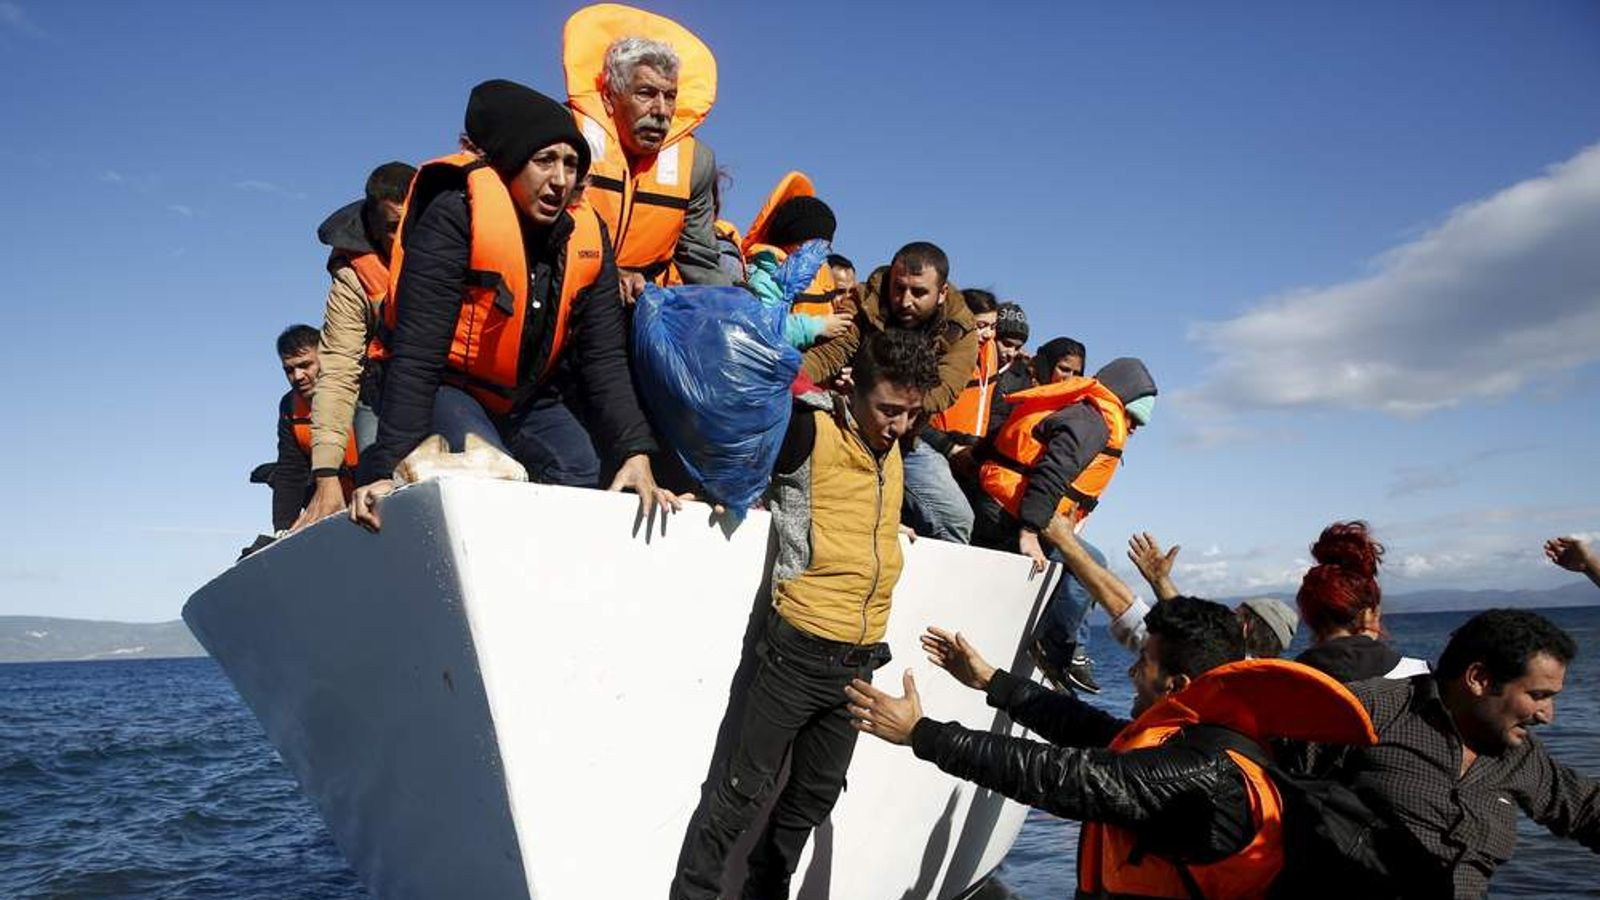 Refugees and migrants jump off a boat as they arrive on the Greek island of Lesbos